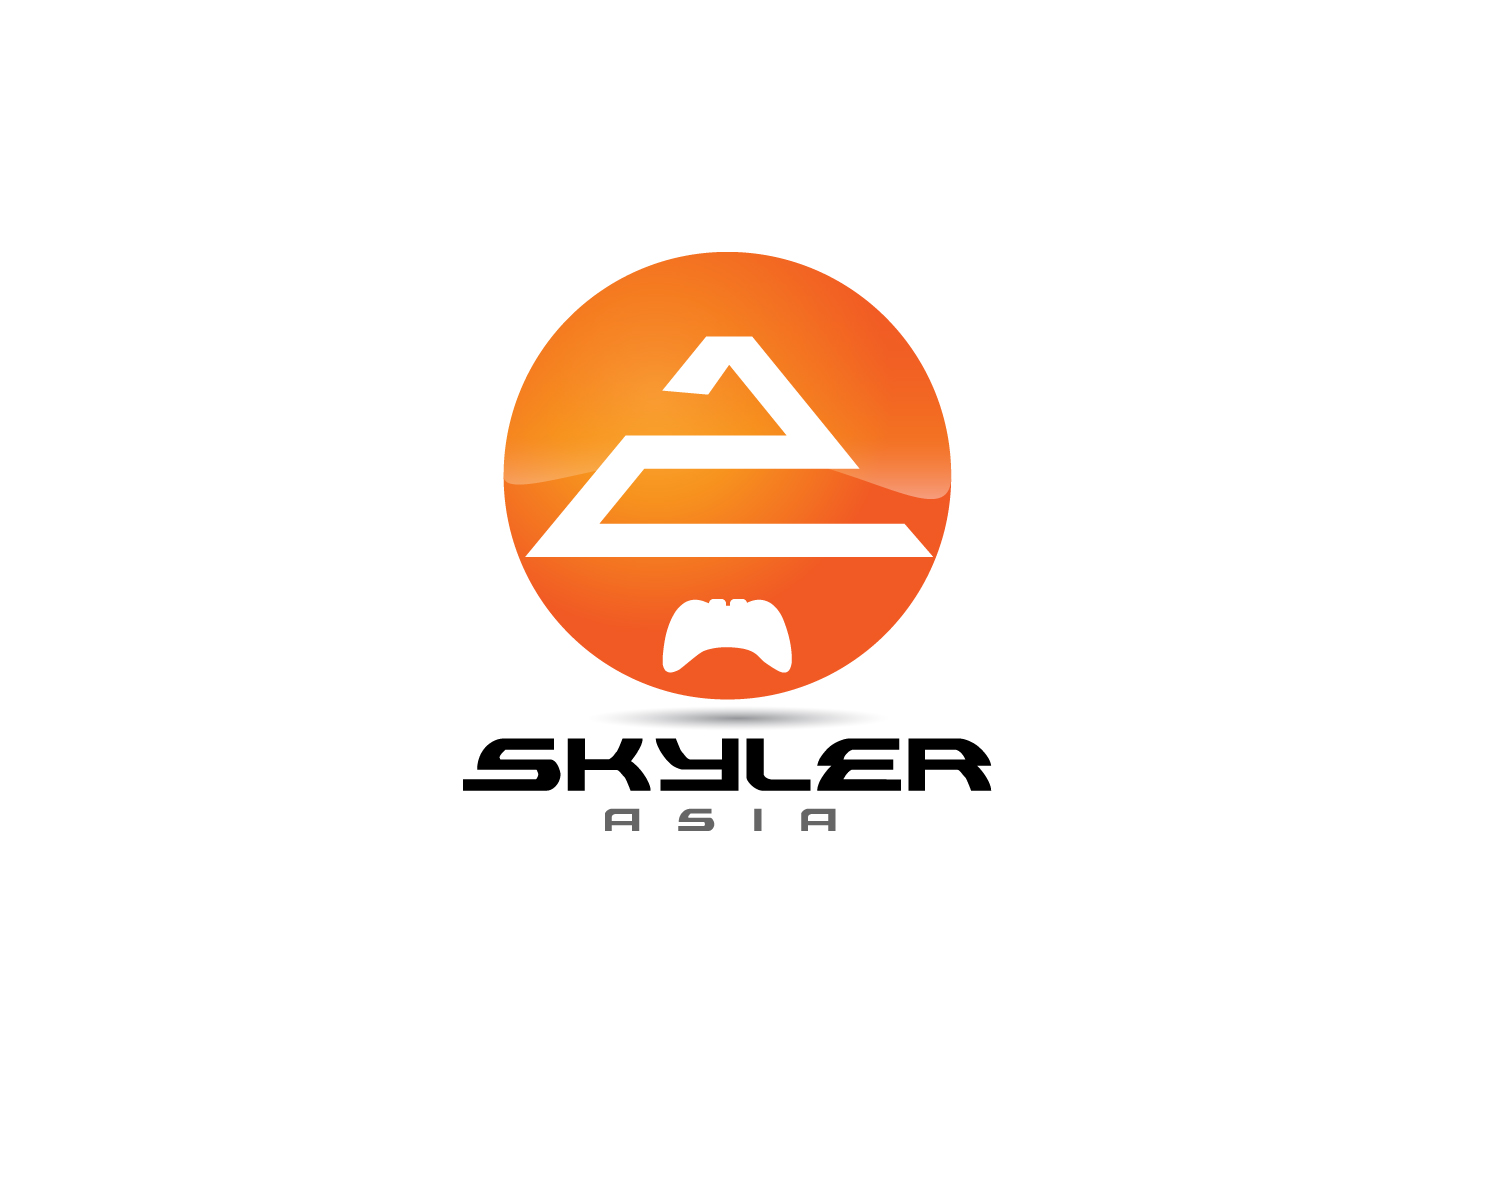 Logo Design by Jagdeep Singh - Entry No. 181 in the Logo Design Contest Artistic Logo Design for Skyler.Asia.